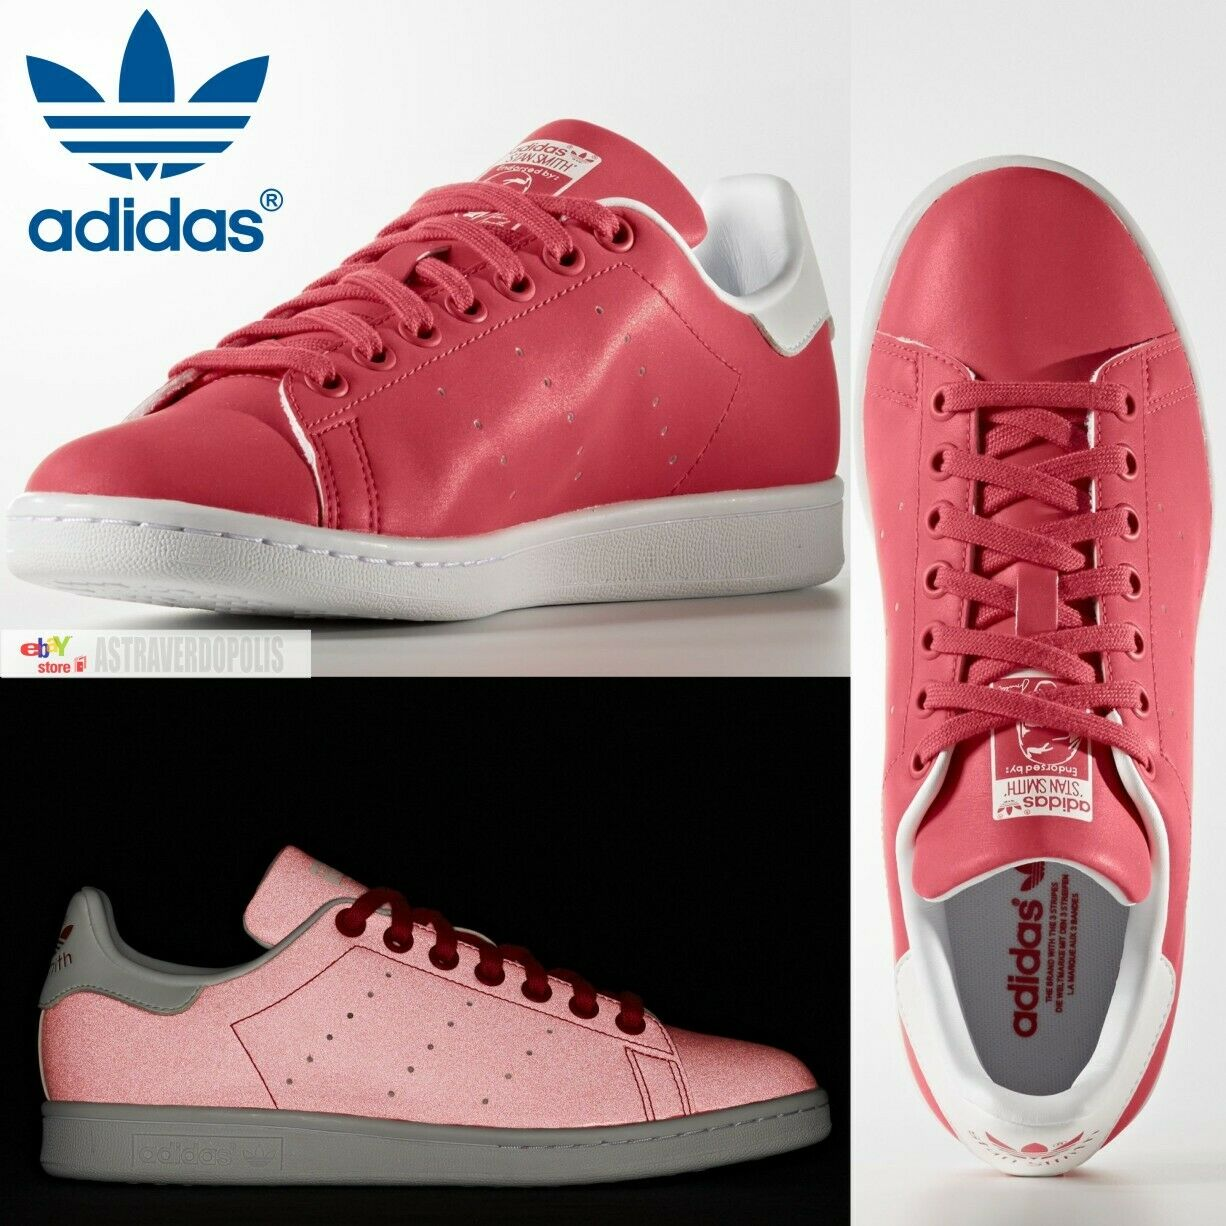 ADIDAS STAN SMITH SHOES ORIGINALS PINK COMFORT WOMENS REFLECTIVE WALKING BB5154